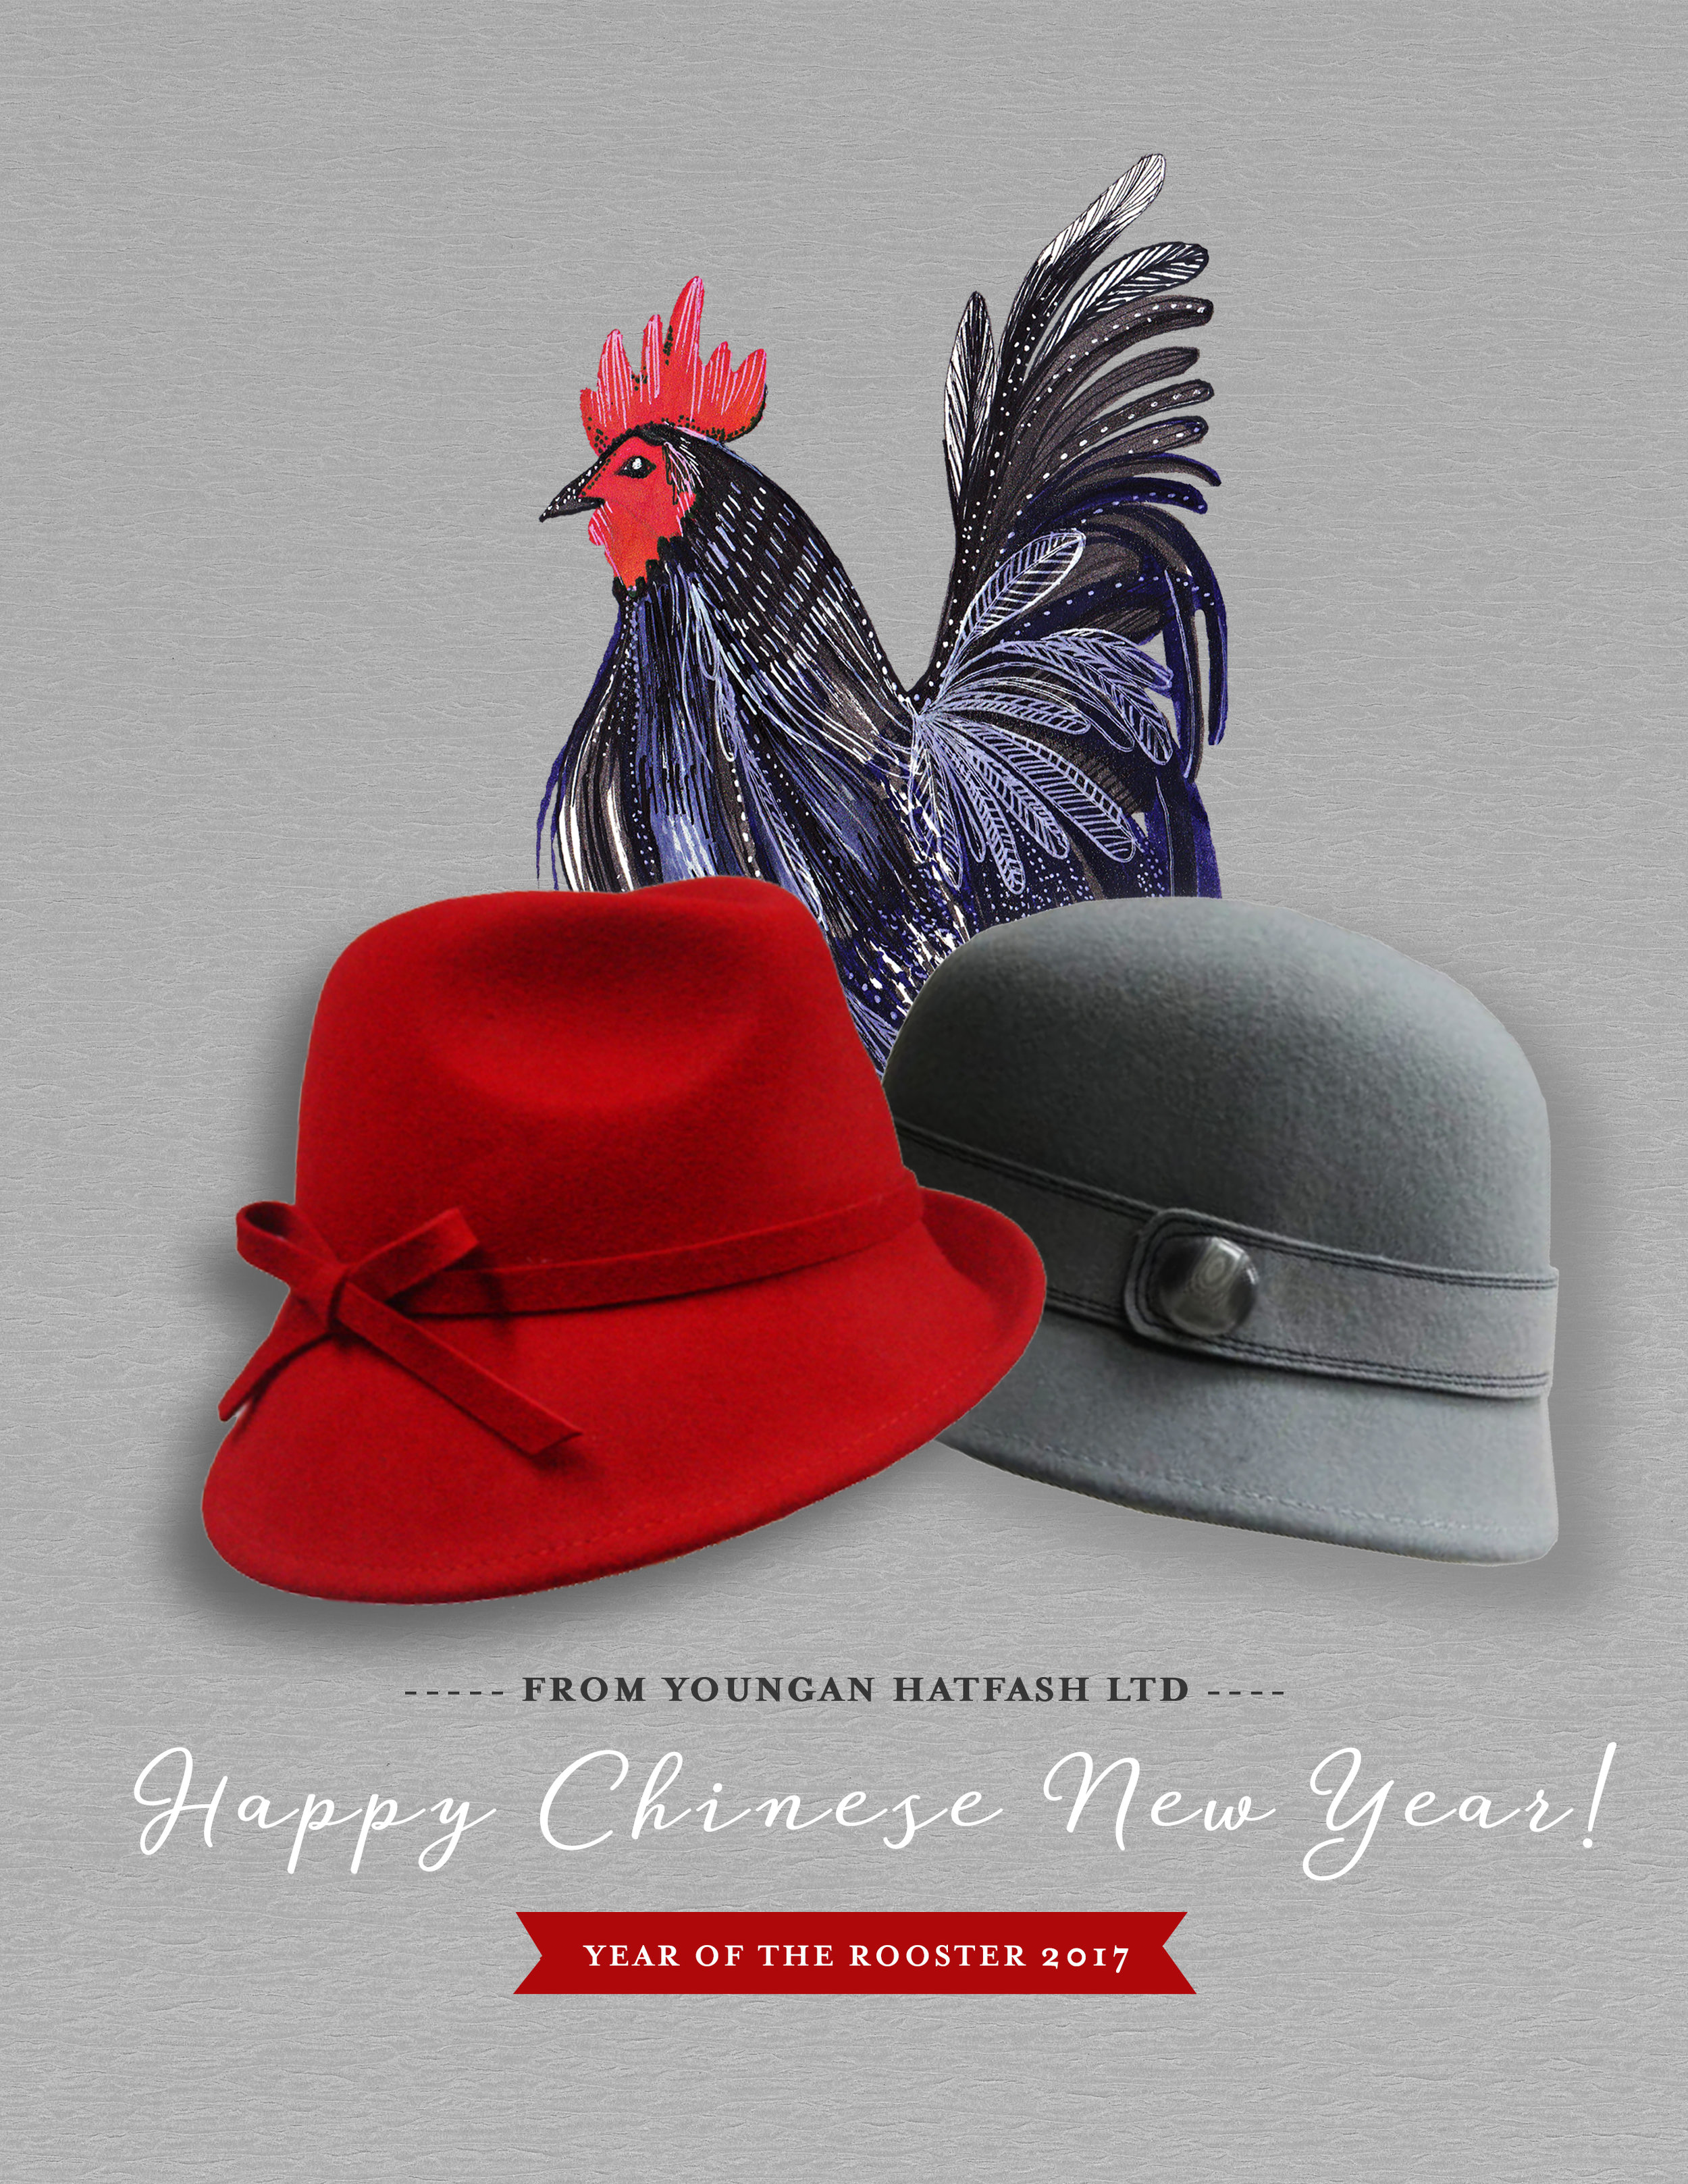 Hatfash Limited, TST, Hong Kong China. Hat Trading Company. Seasonal Email Campaign Ad, Year of the Rooster.